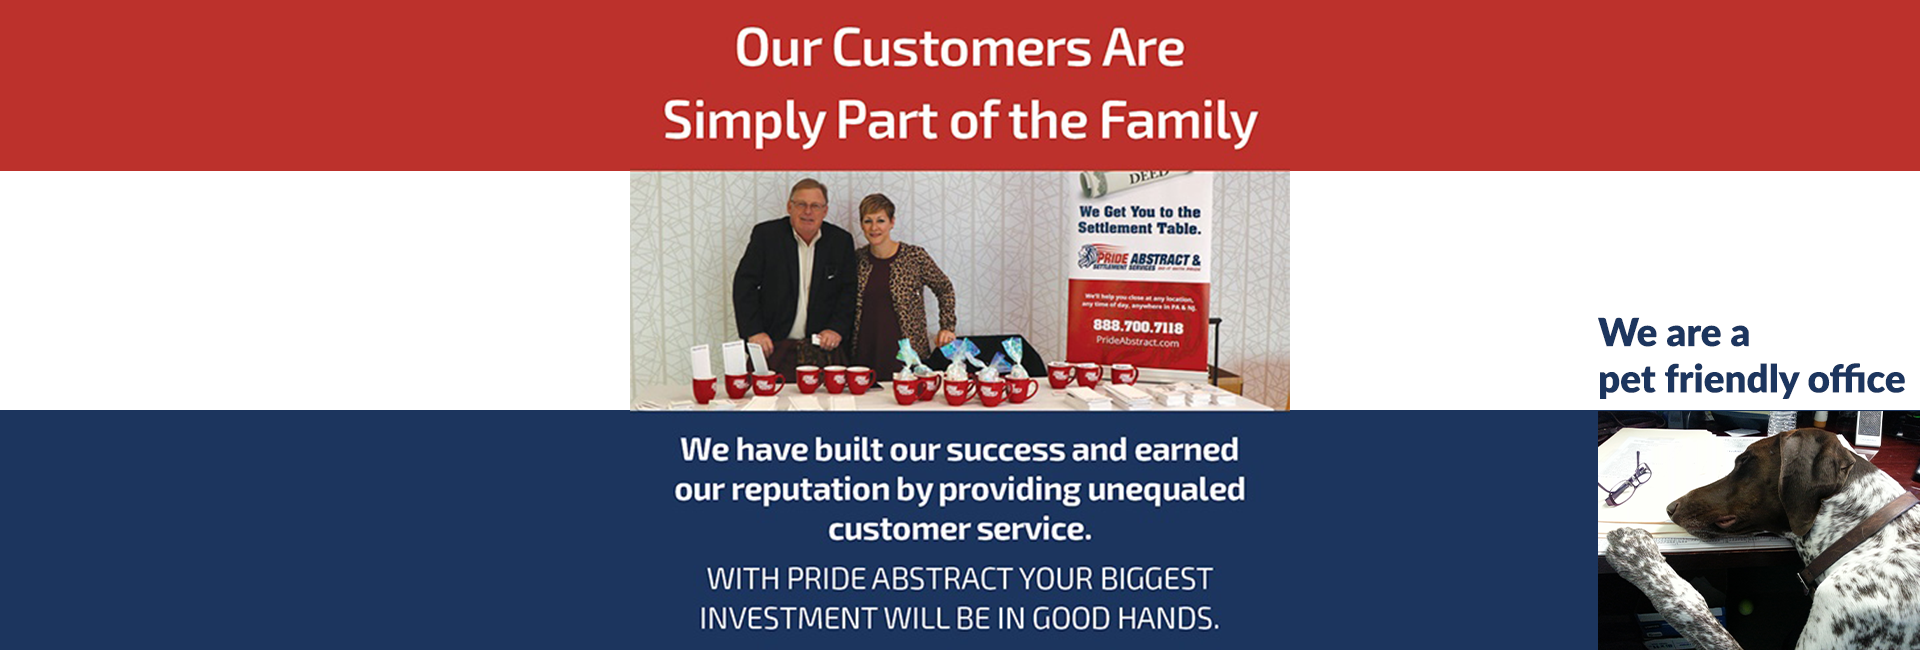 our customers are part of the family